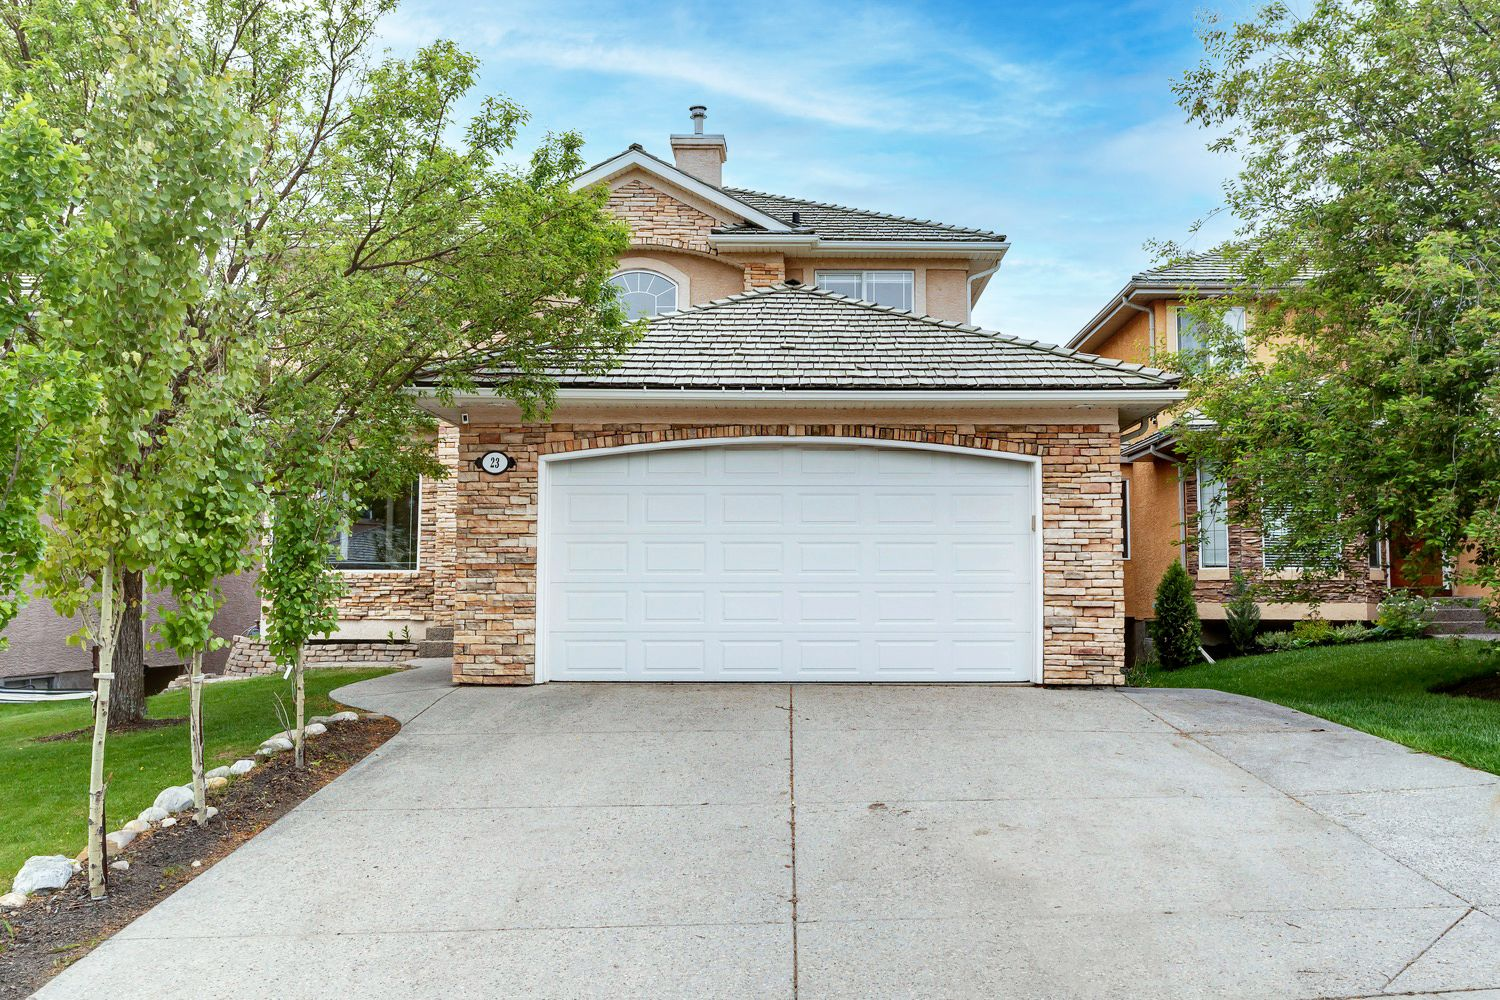 Main Photo: 23 Royal Crest Way NW in Calgary: Royal Oak Detached for sale : MLS®# A1118520